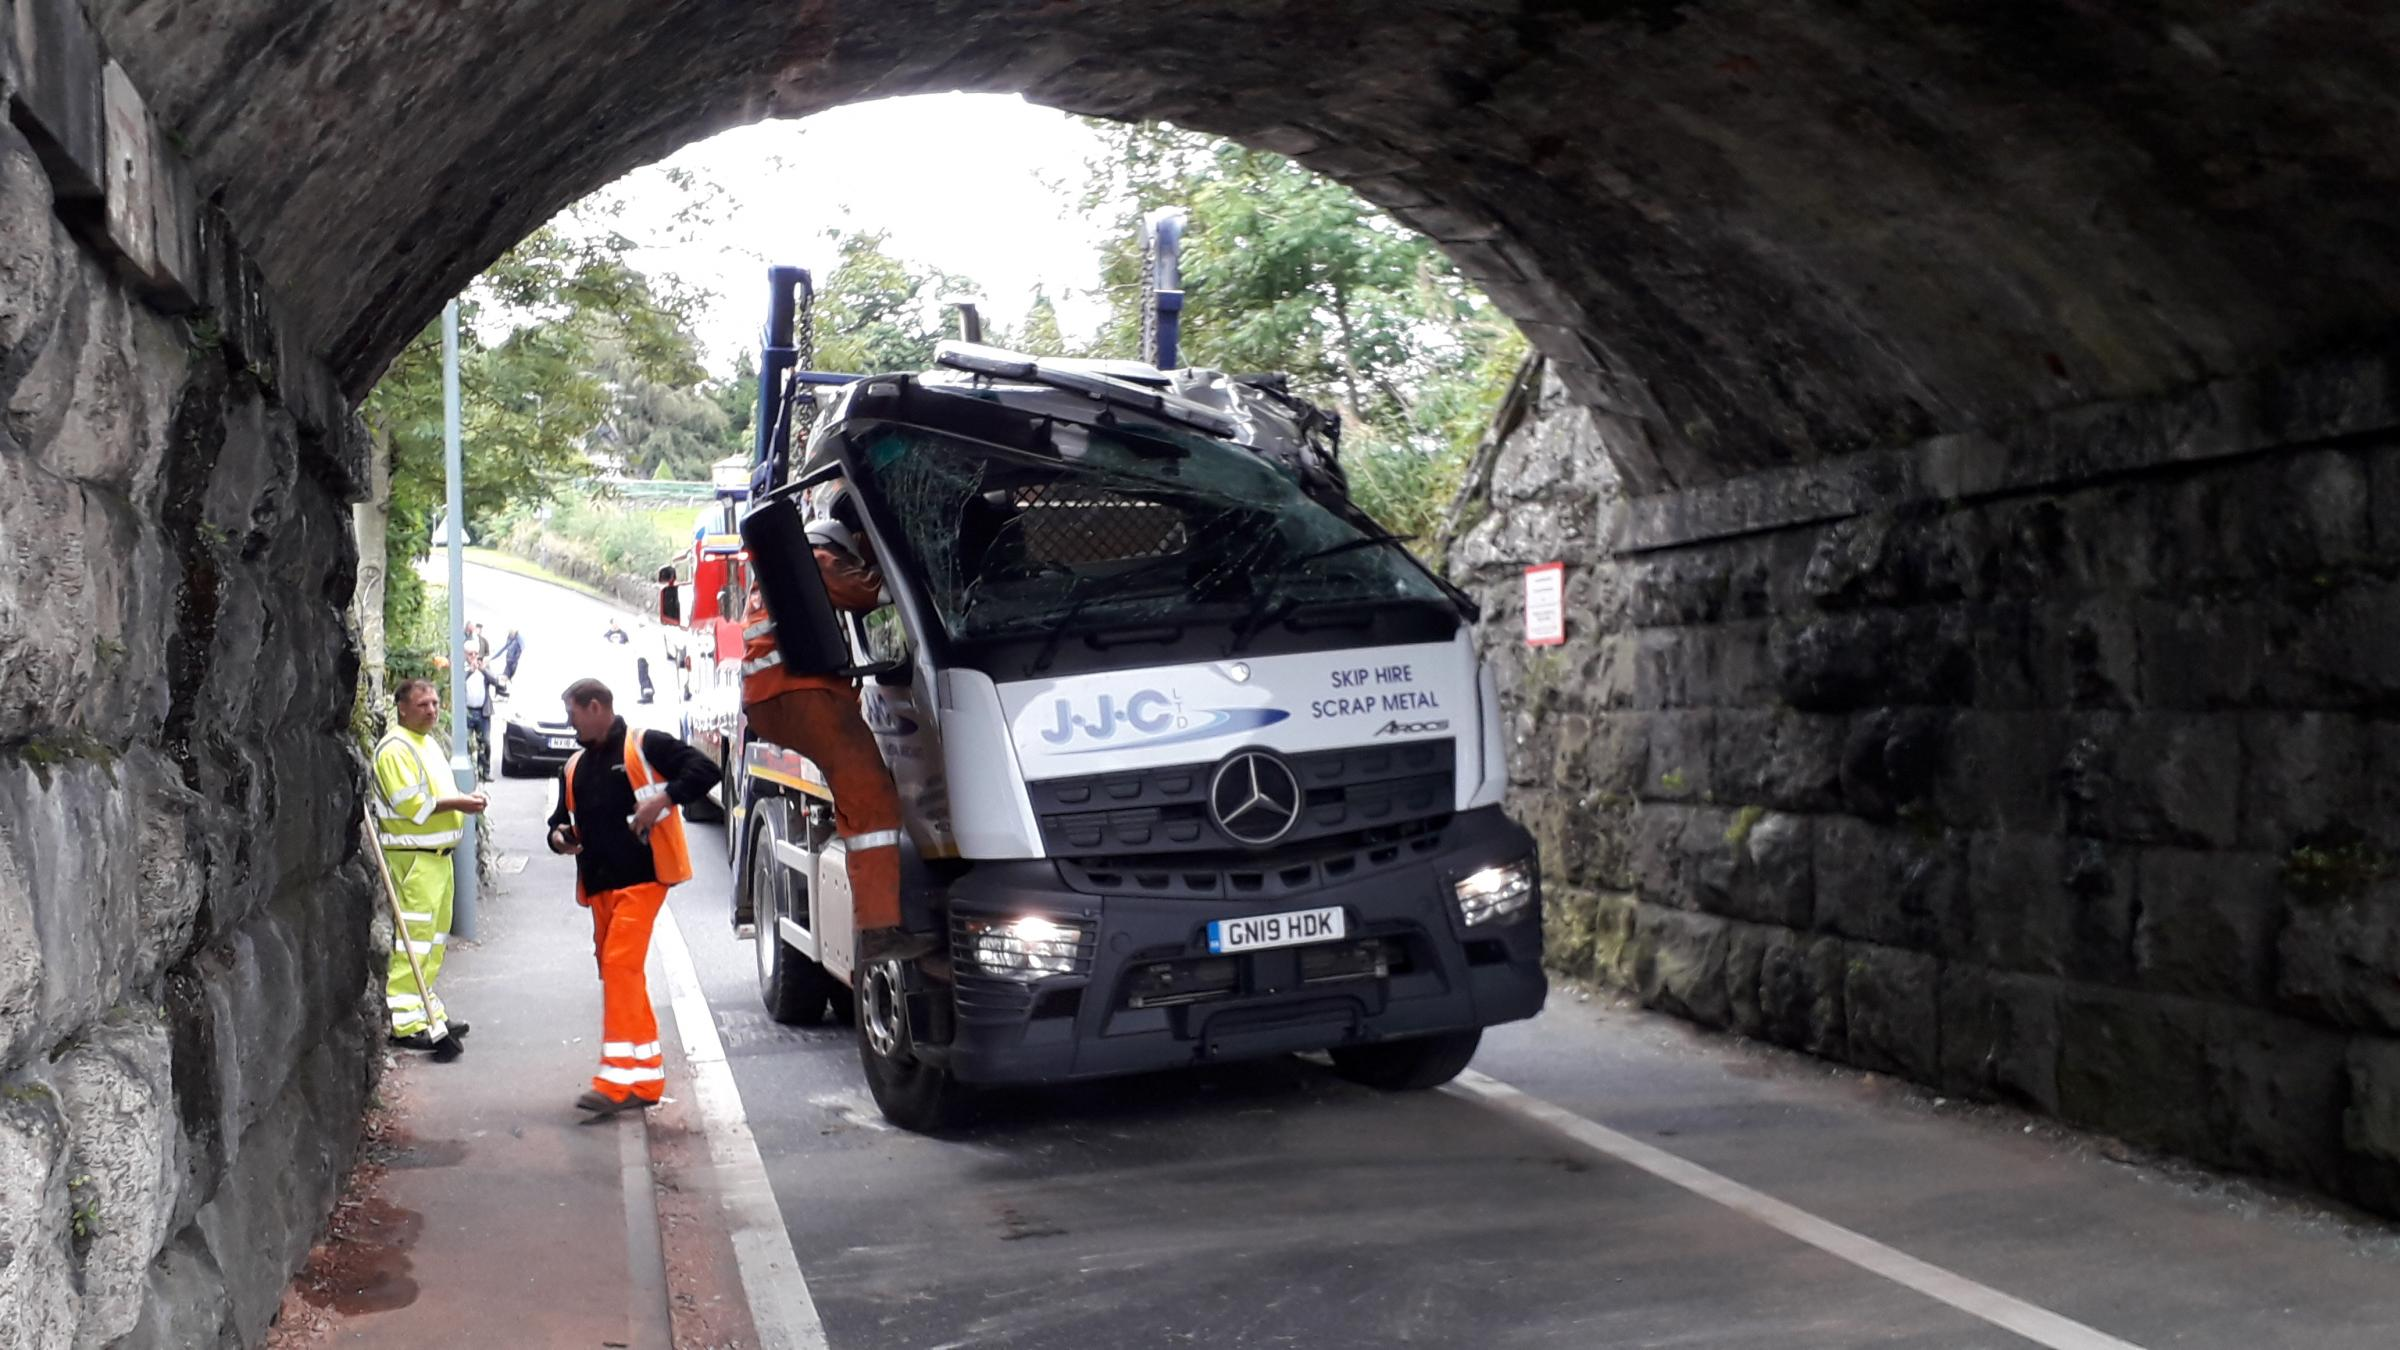 Major delays in Kendal after lorry hits bridge